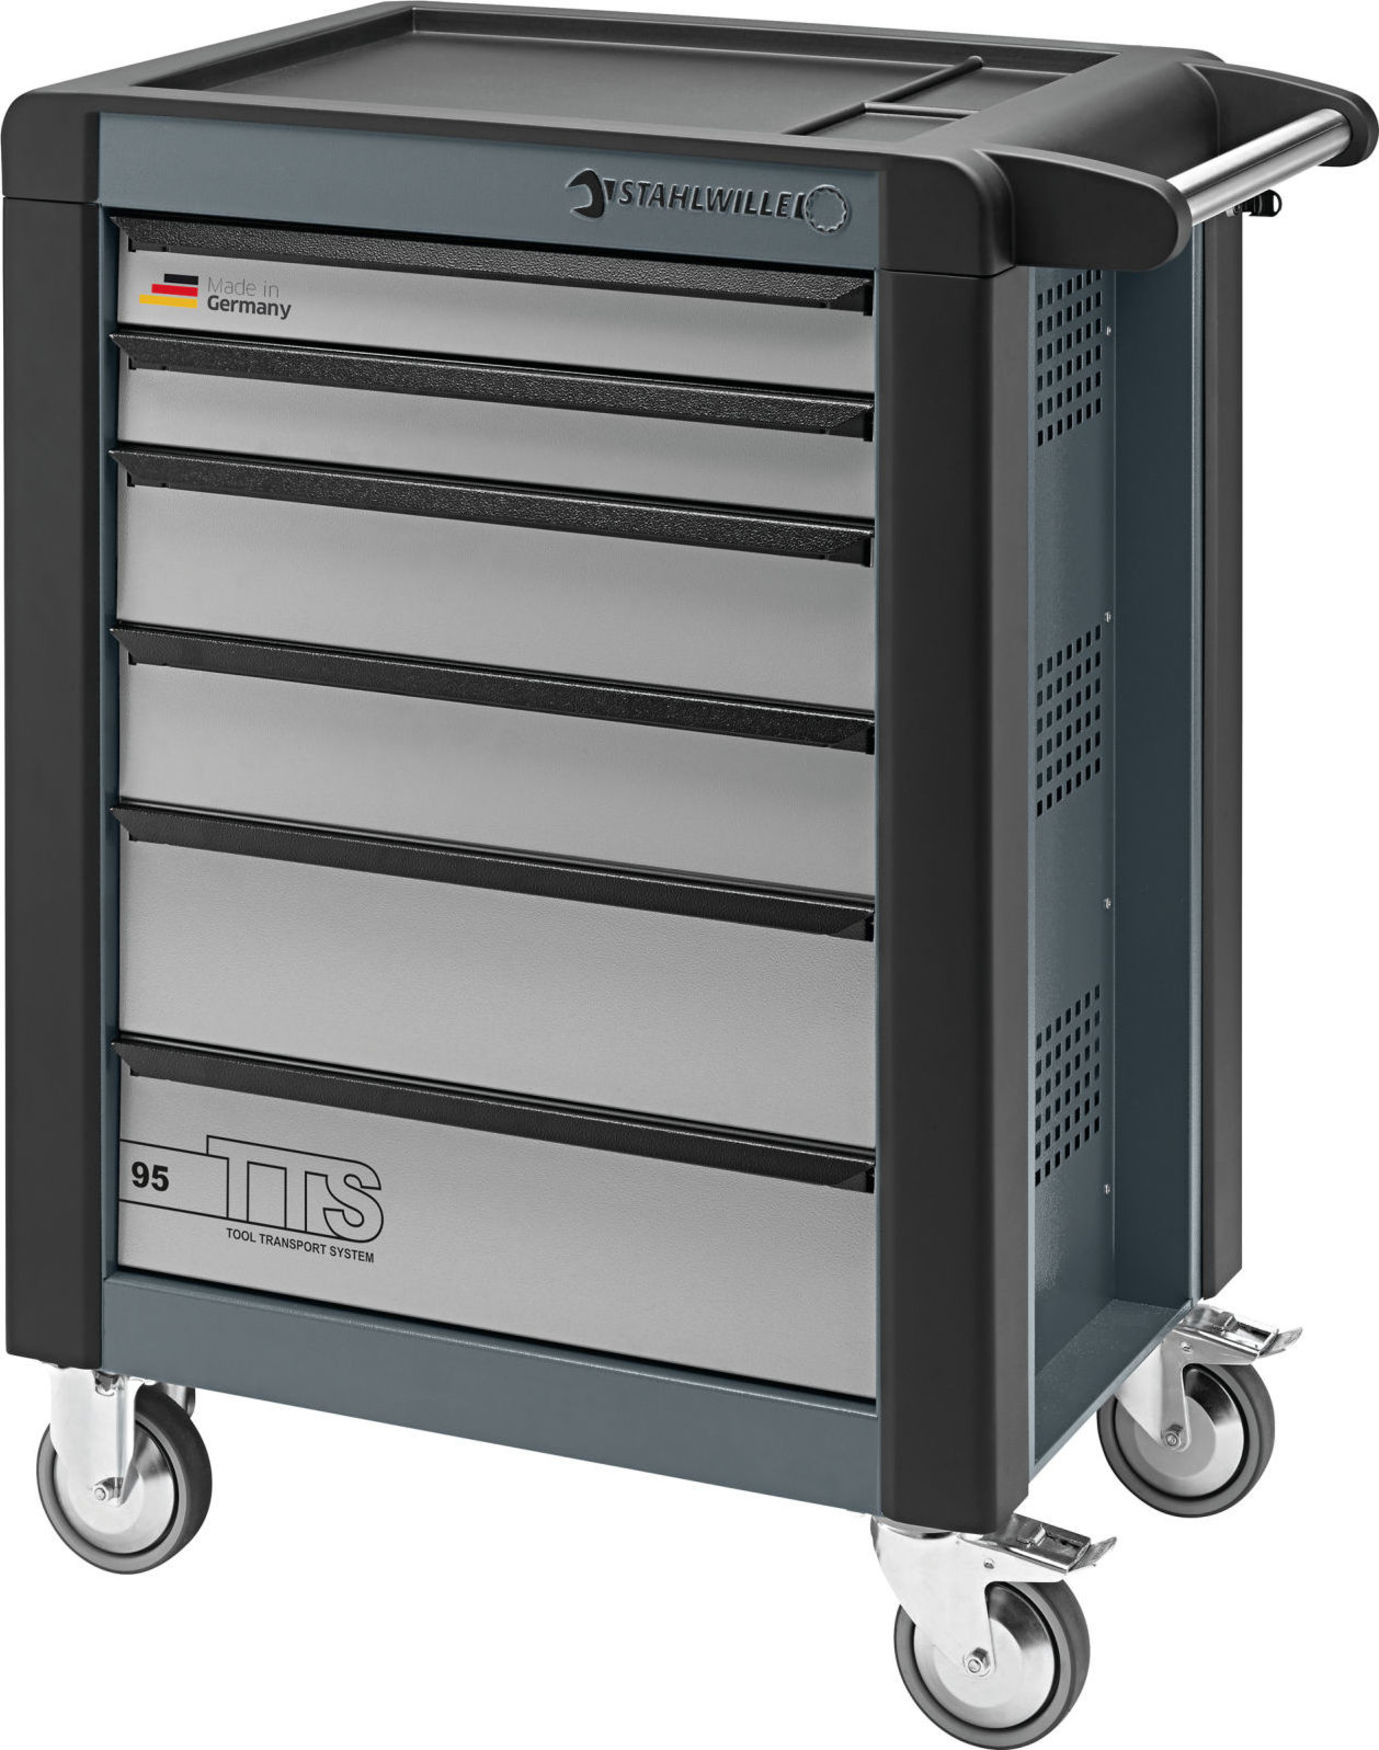 Stahlwille Tool Trolleys TTS 6 drawers charcoal grey, RAL 7016 L.823 mm x W.497 mm x H.1021 mm, No. 95/6A, RAL 7016